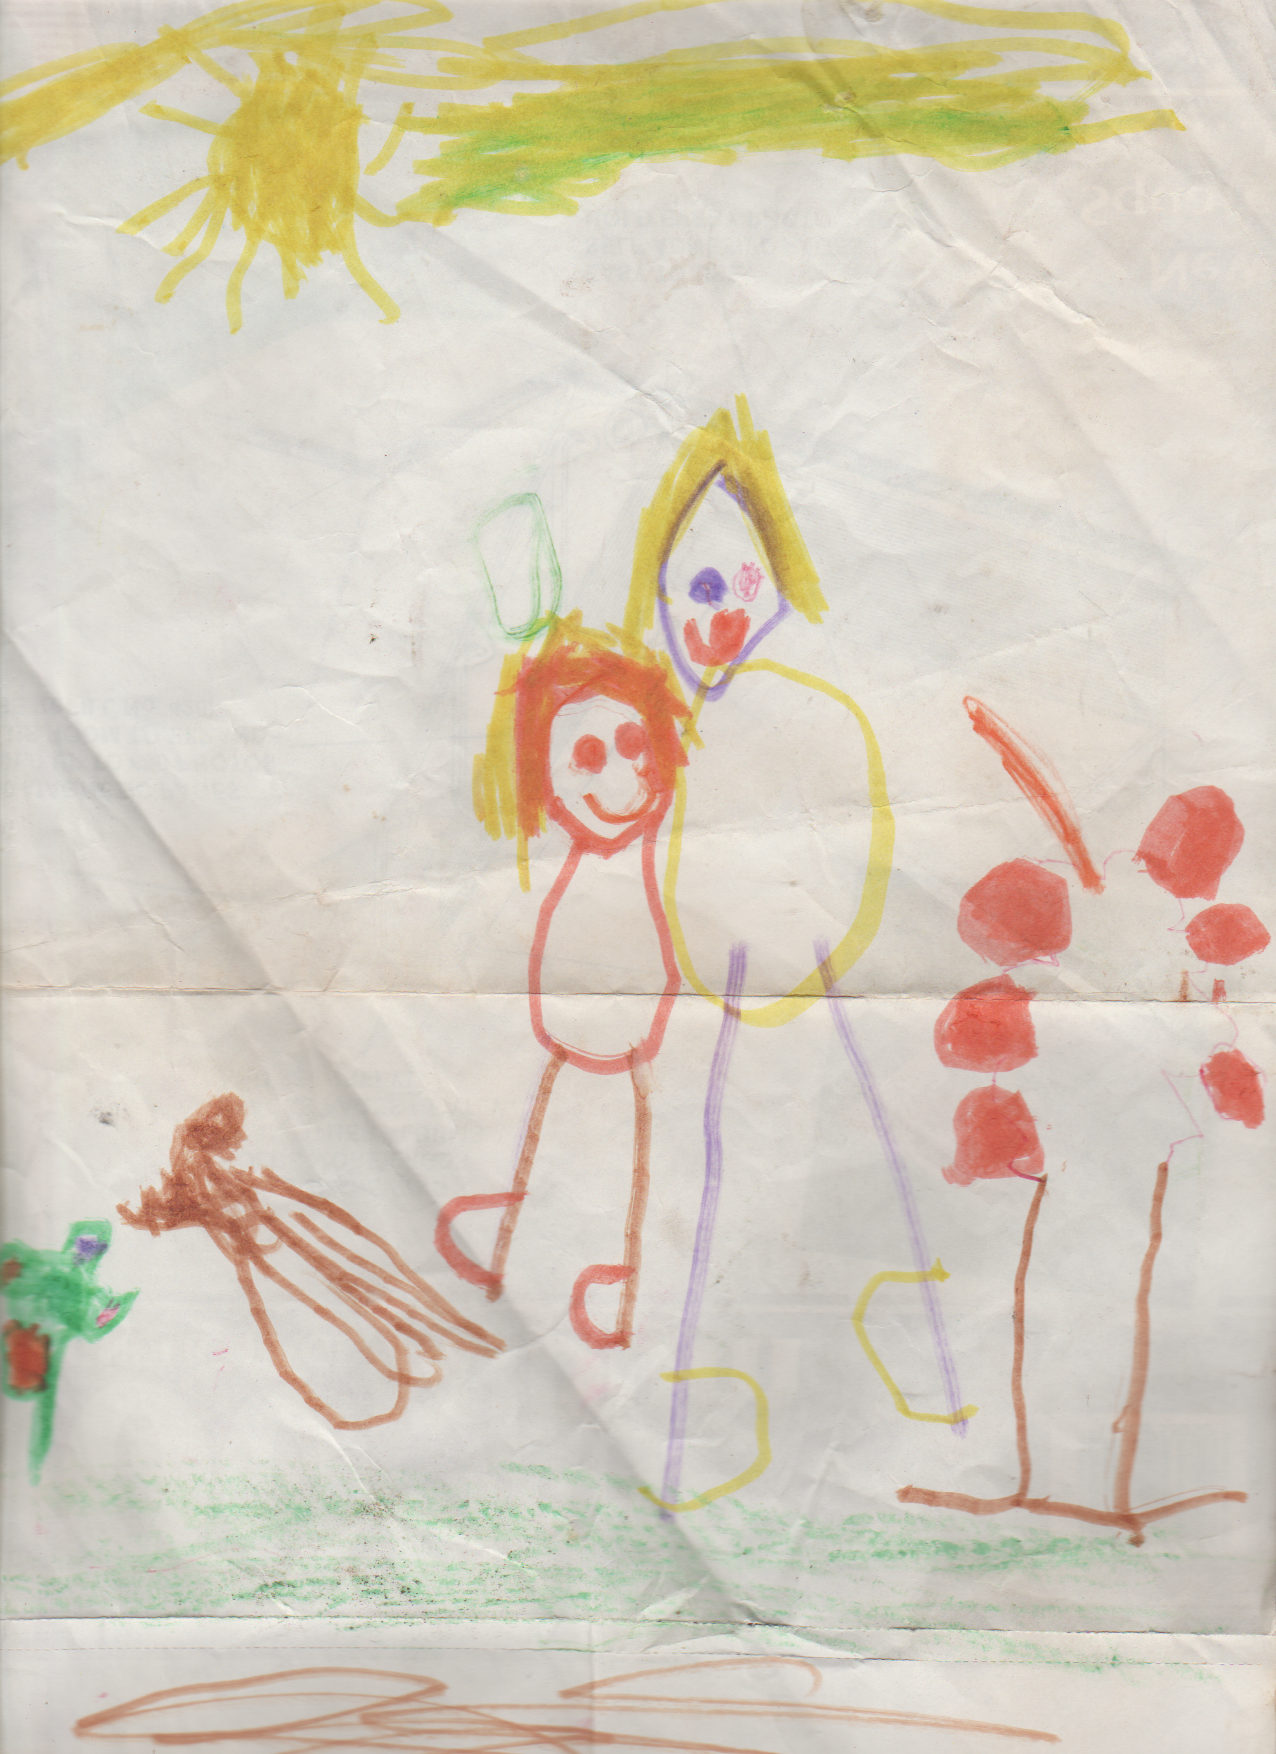 1986-12-06 - Saturday - Family drawing, by 6 yrs old Alan Williams-1.png